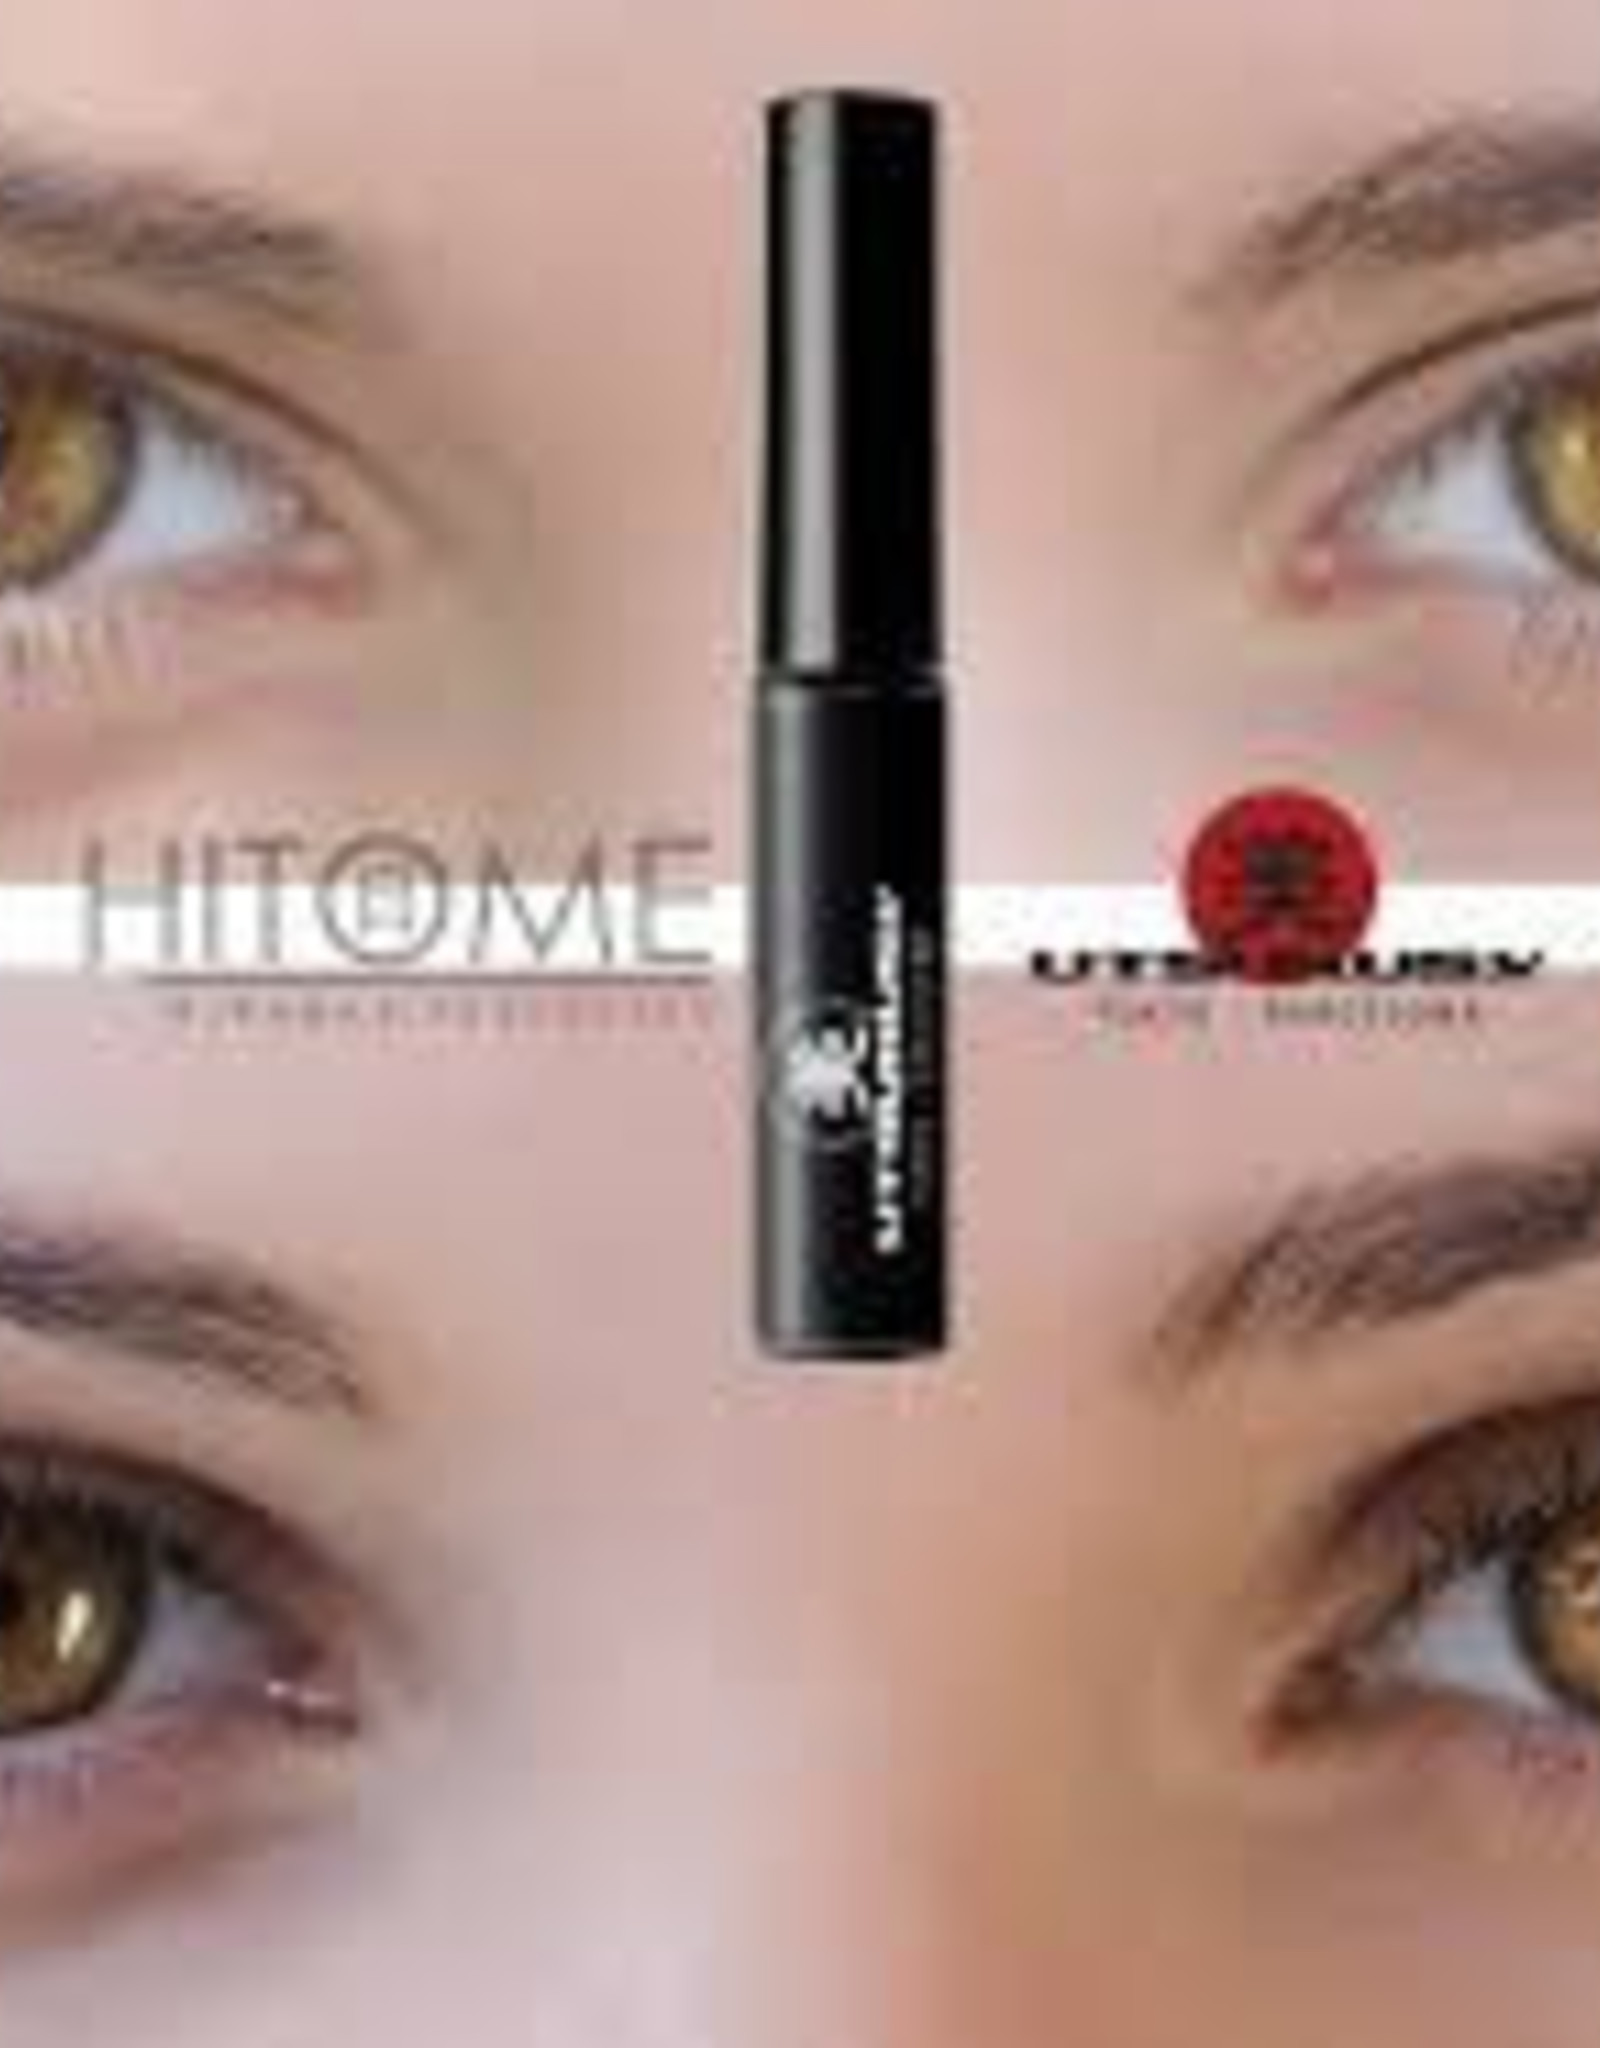 Utsukusy Hitome eye lash growht serum